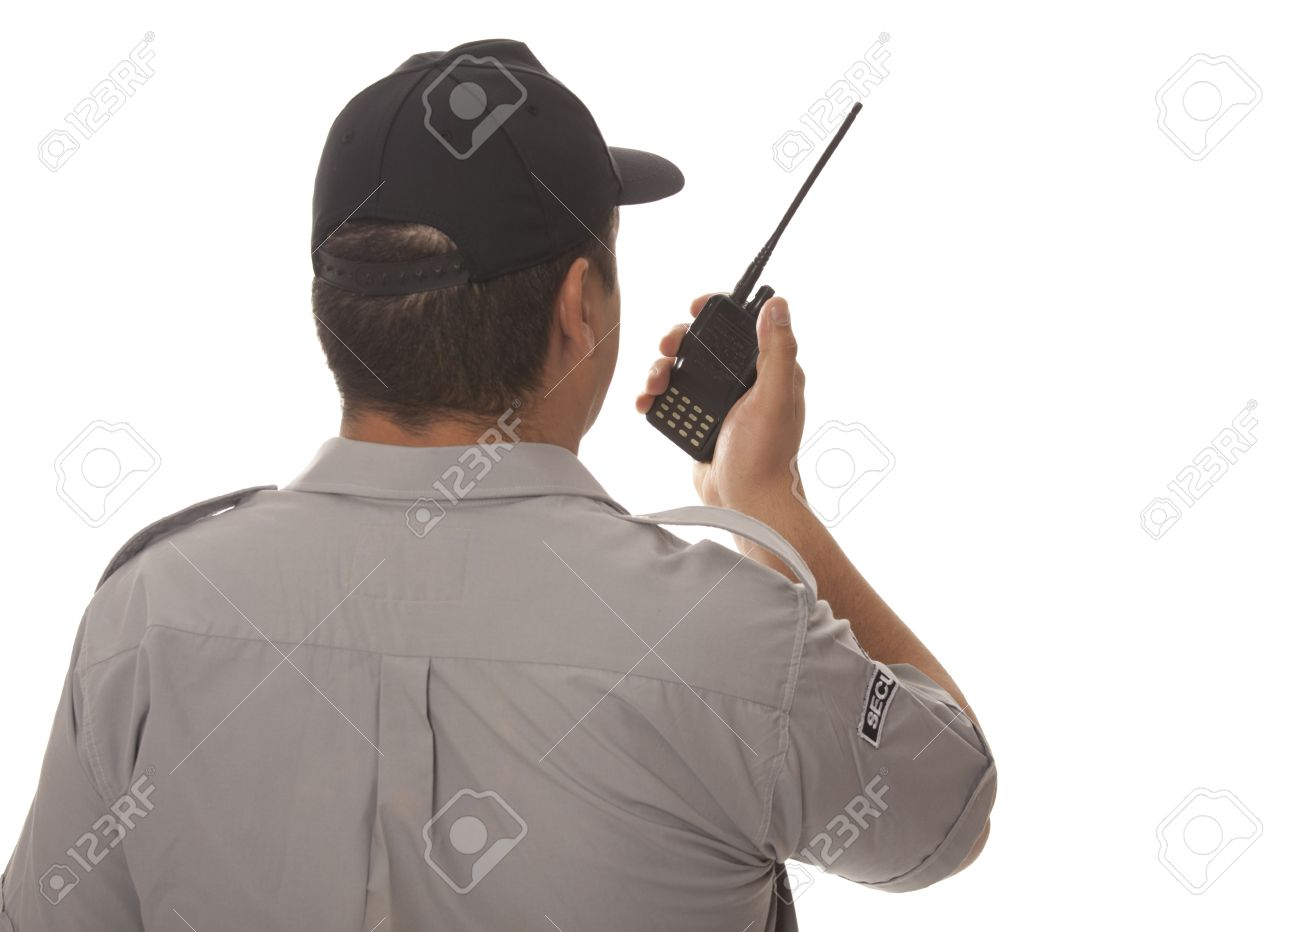 Security guard hand holding cb walkie-talkie radio Stock Photo - 14290474